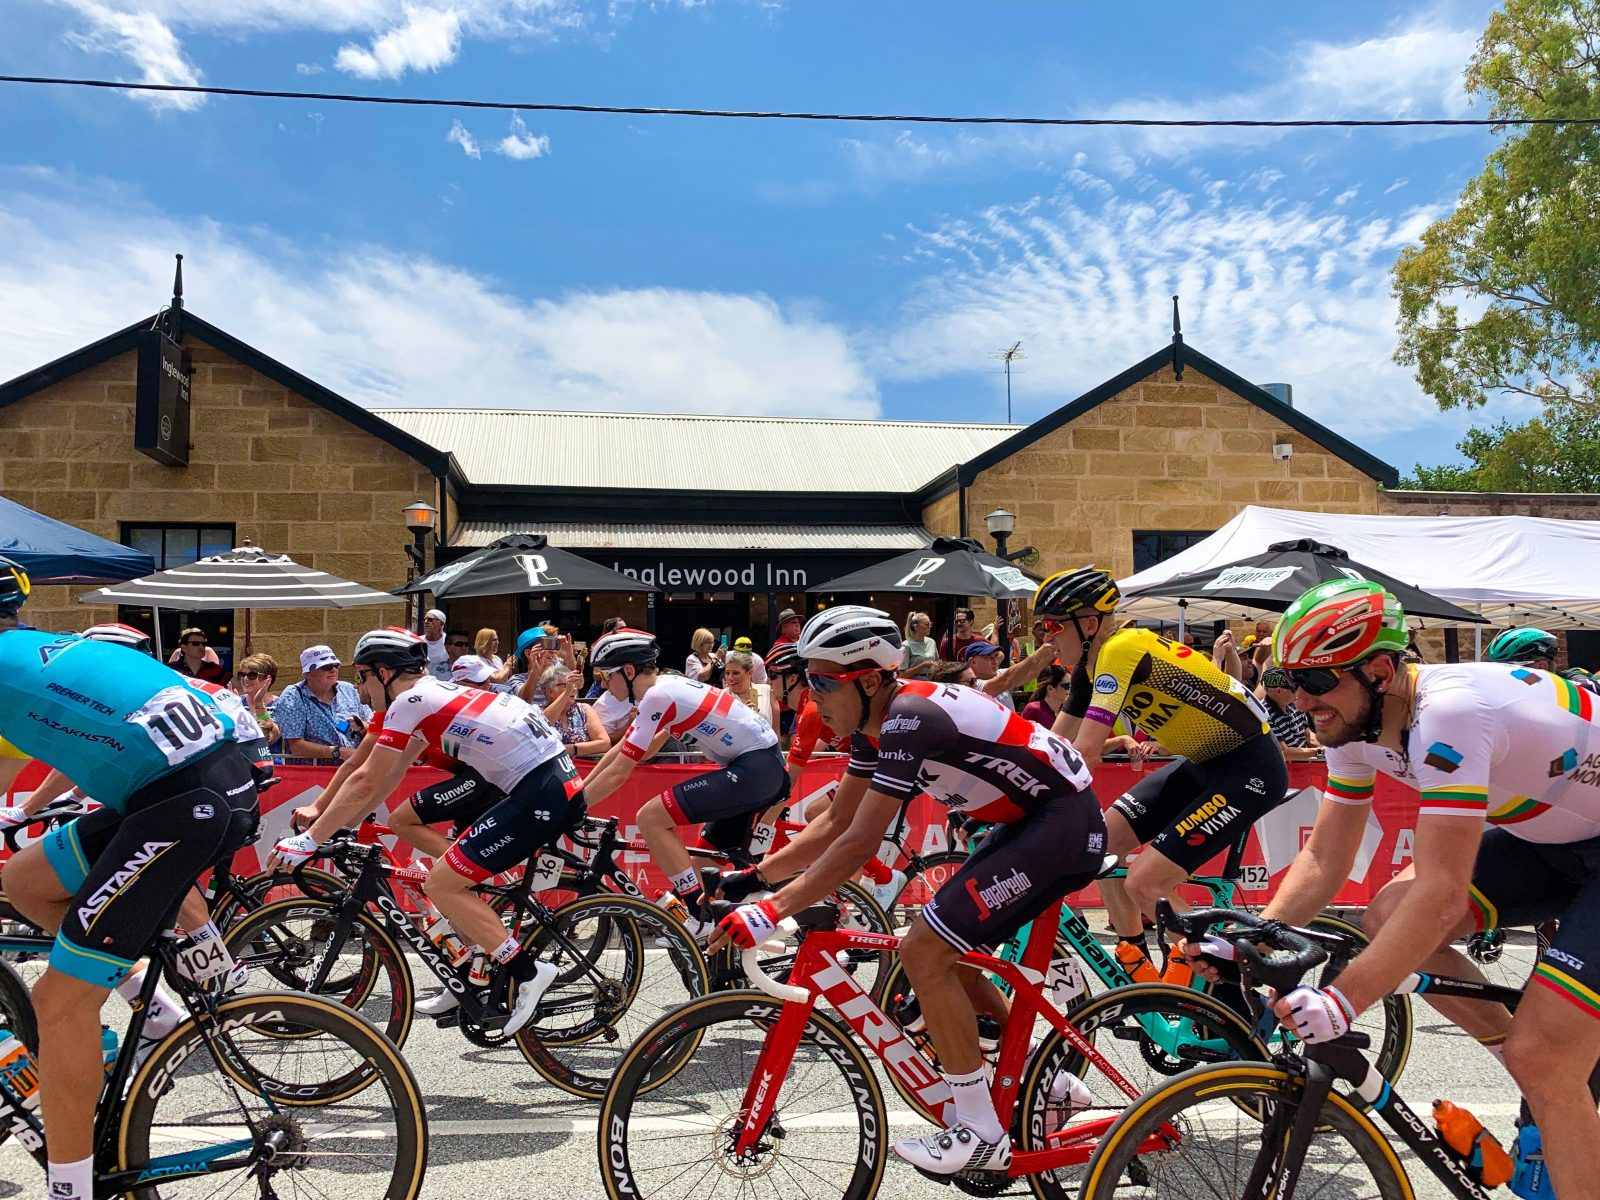 Tour Down Under going past the Inglewood Inn